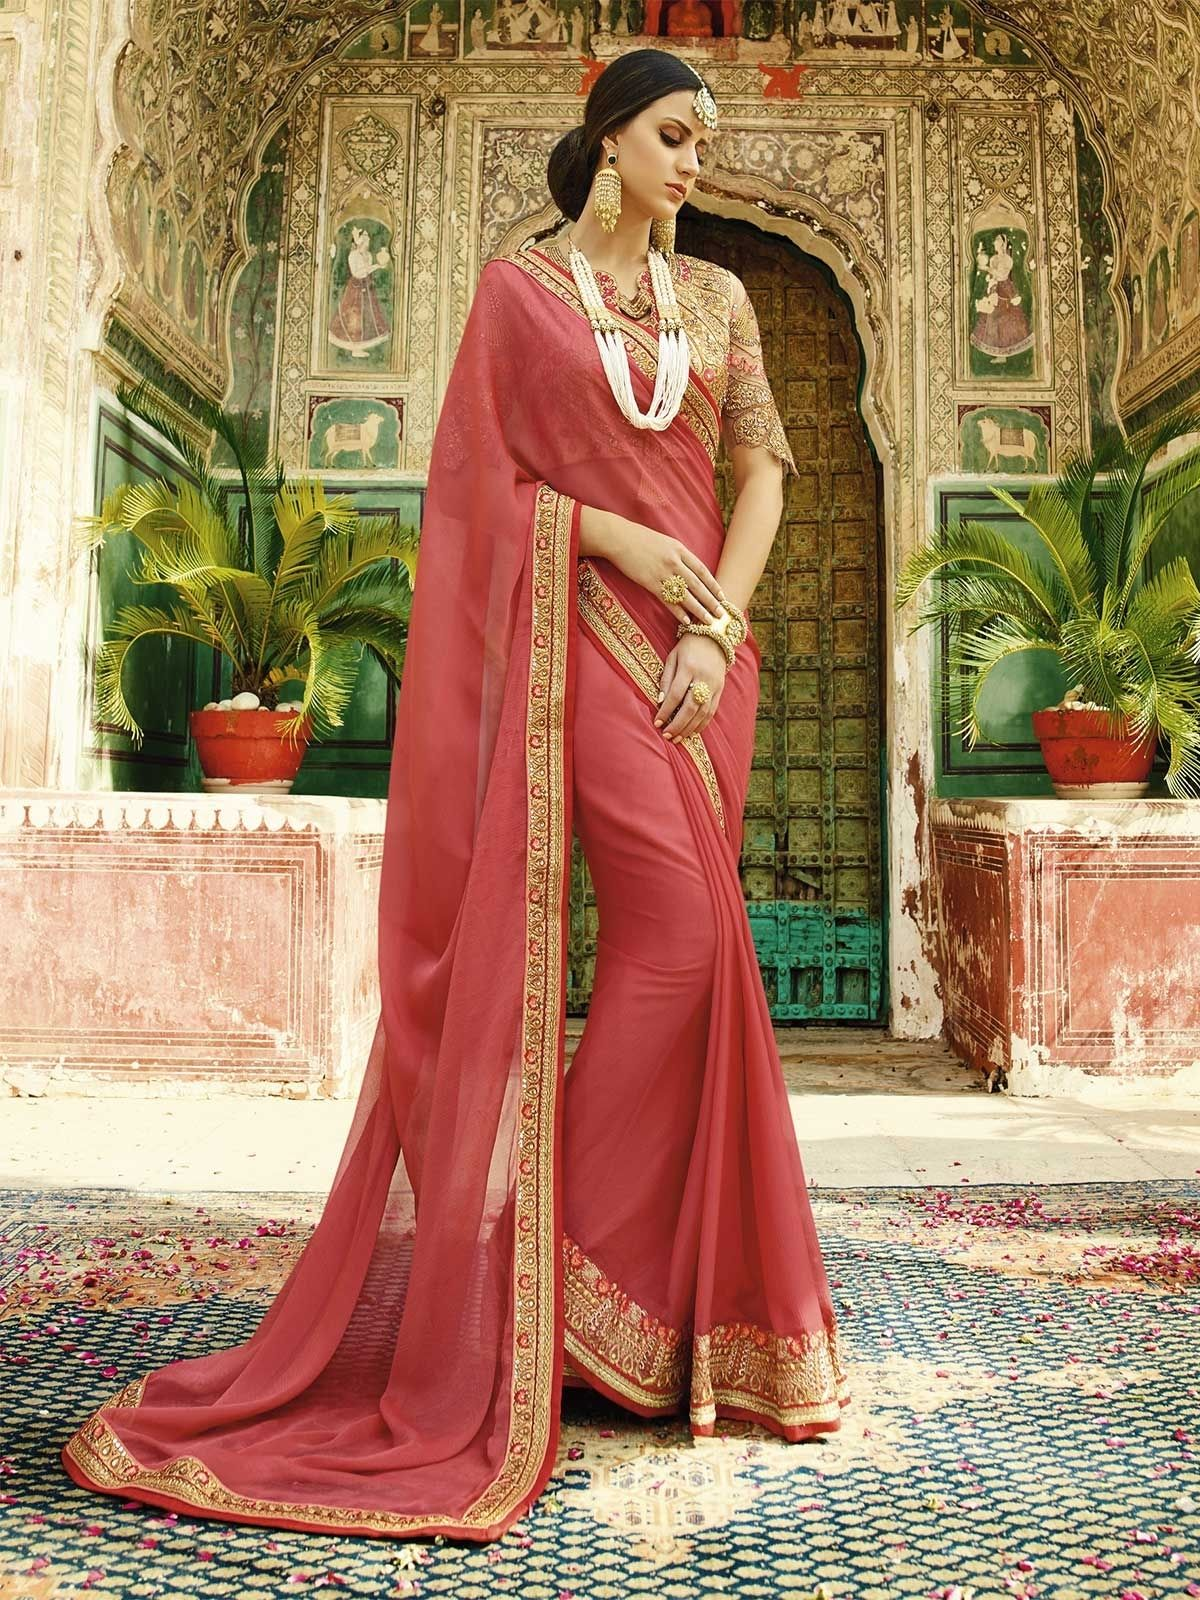 c4a05185d4207 Buy latest dark peach color embroidered wedding saree for women at  affordable prices from ZaraaFab. Check our latest collection of peach color  sarees and ...